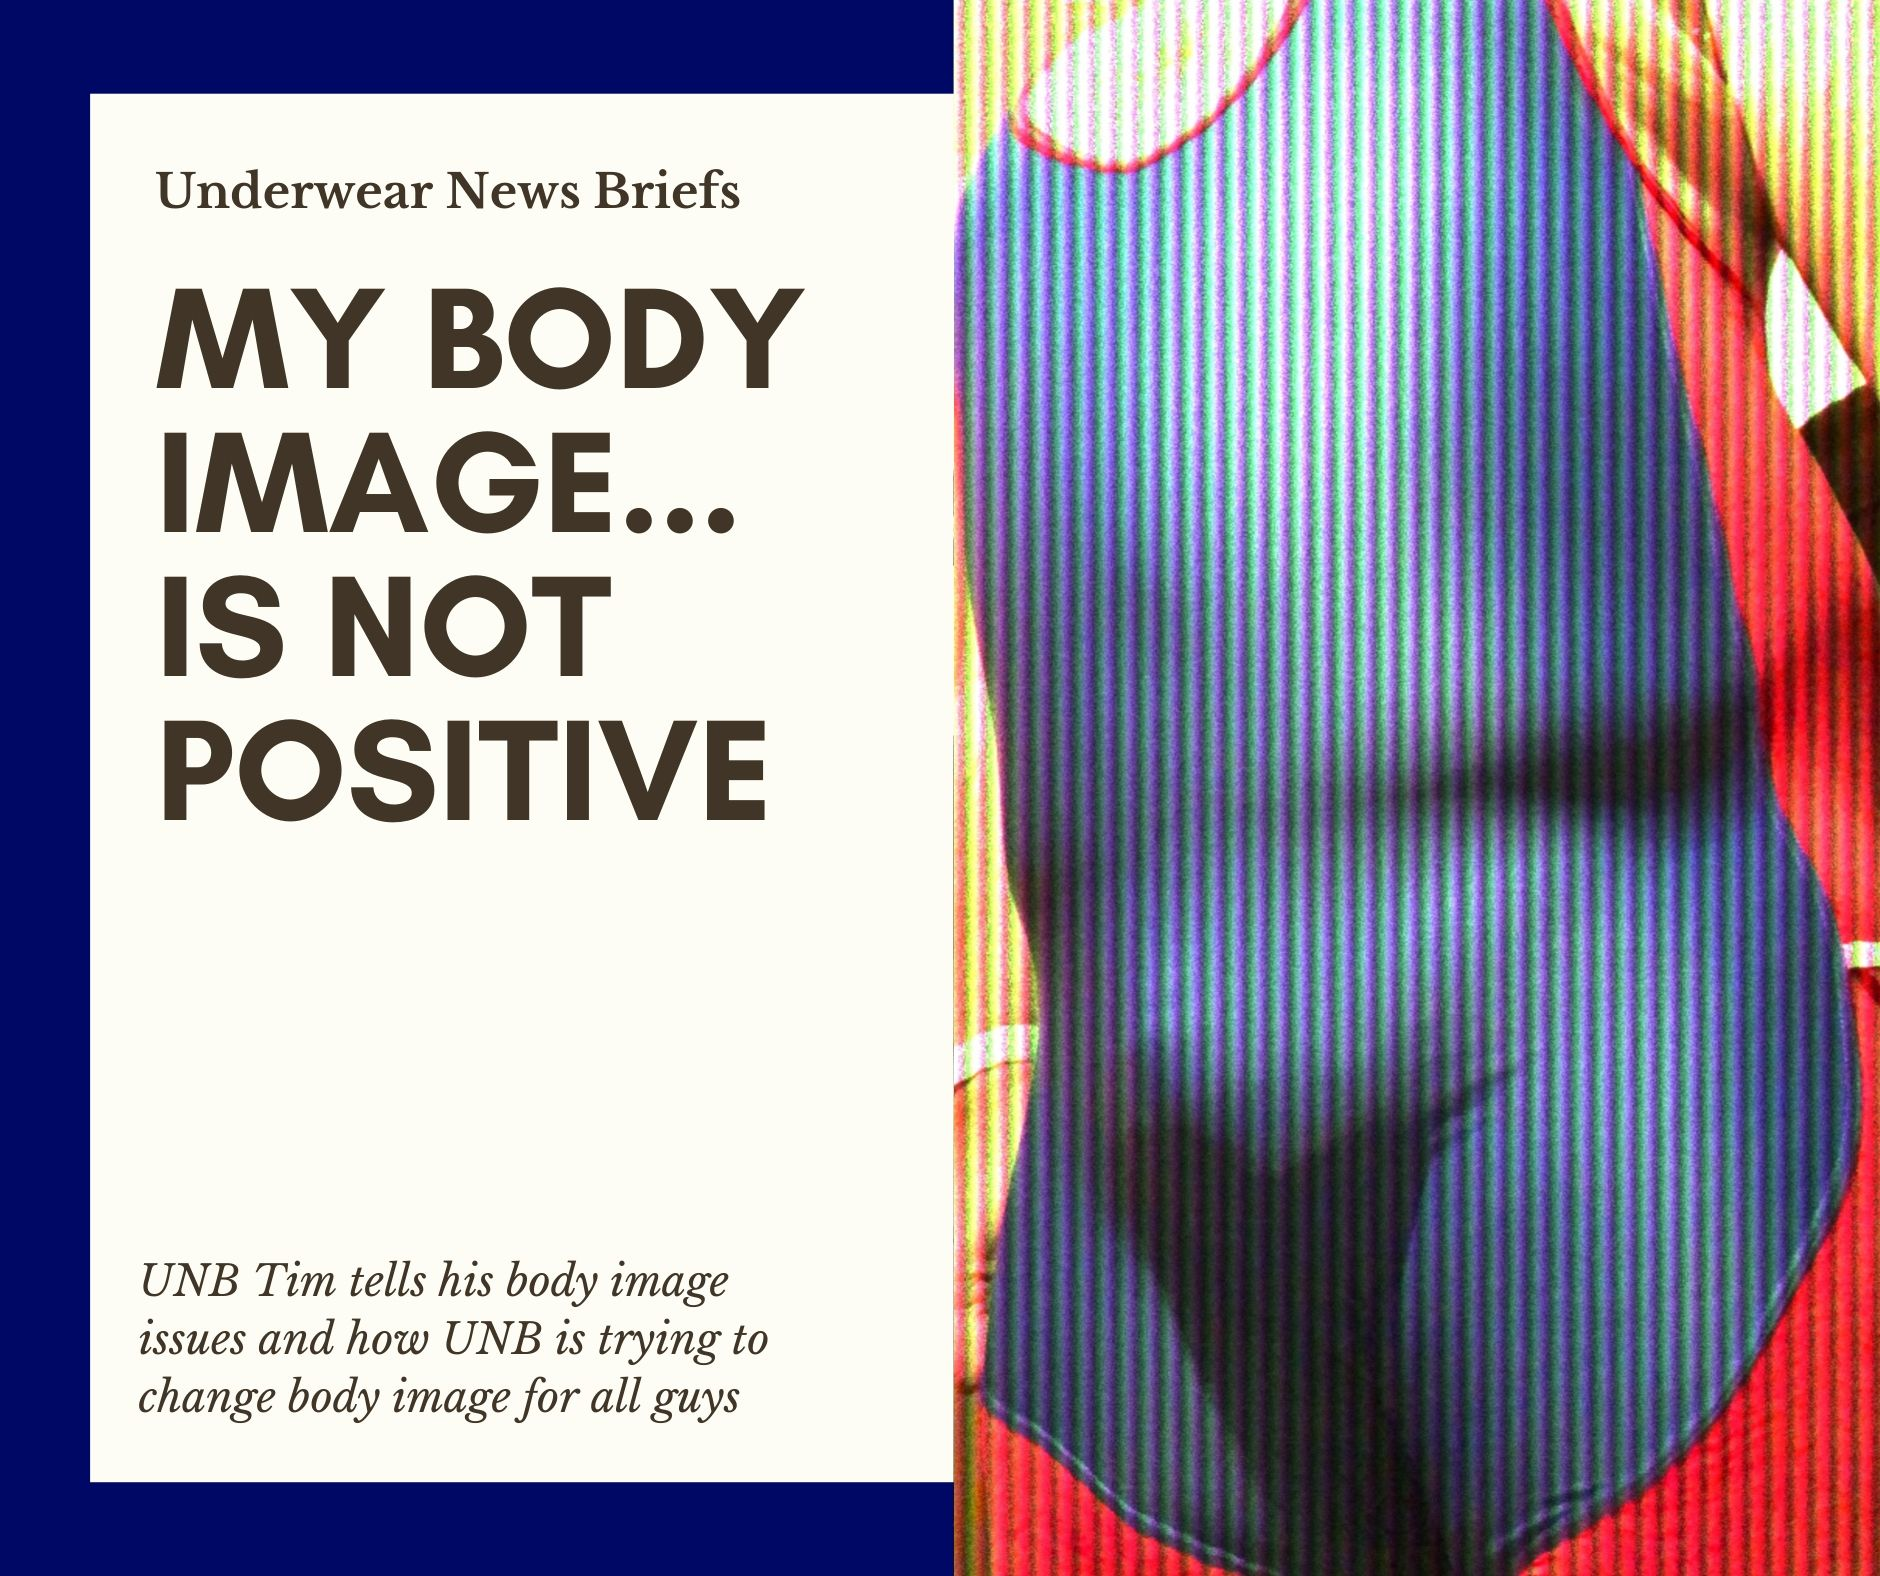 My Body Image...Is Not Postive